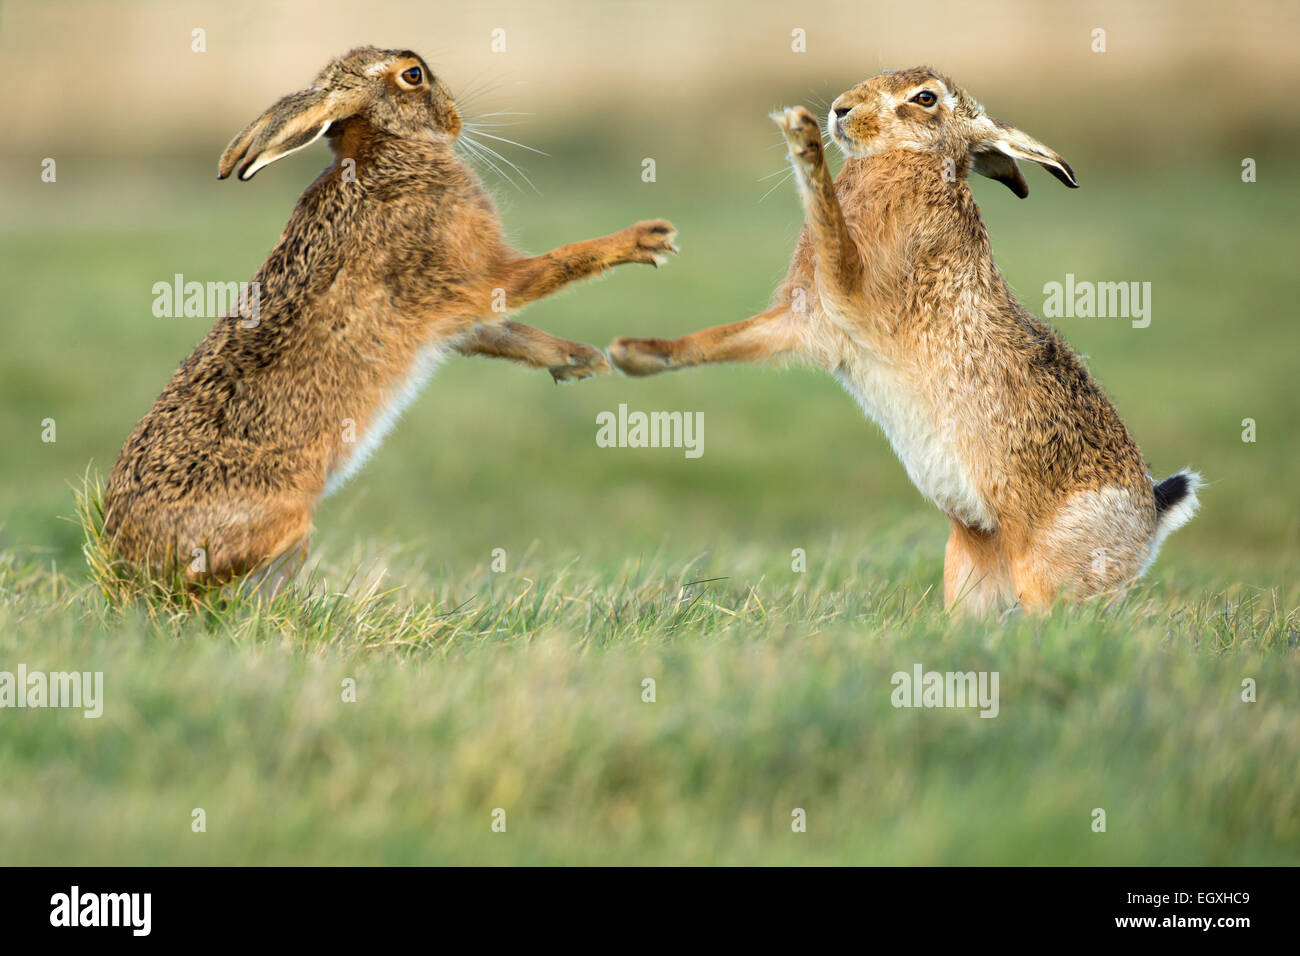 Brown hares (Lepus europaeus) standing and boxing during mating season in March - Stock Image